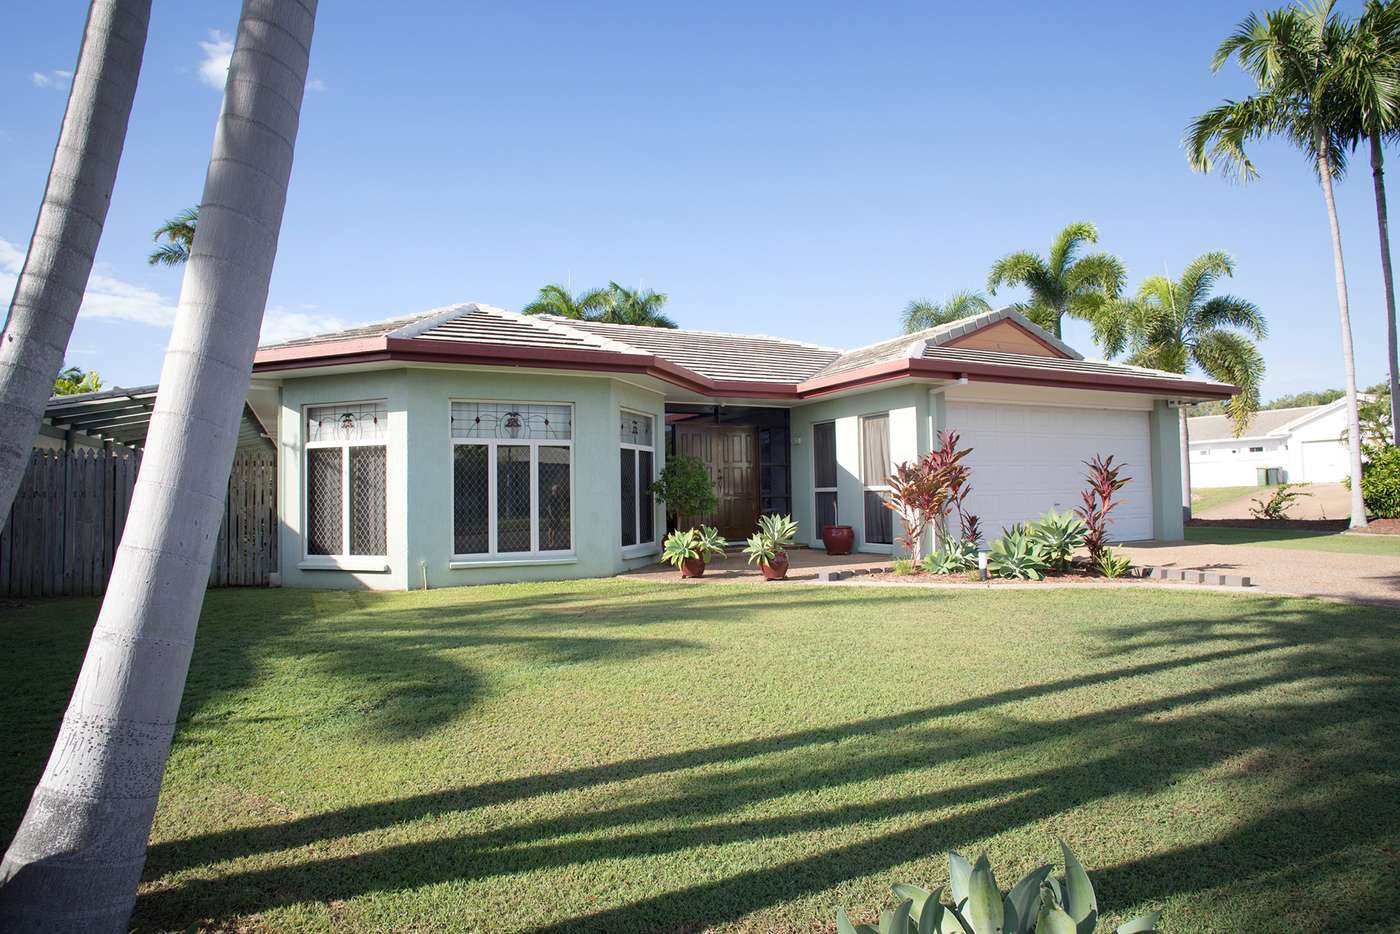 Main view of Homely house listing, 6 Macarthur Drive, Annandale QLD 4814